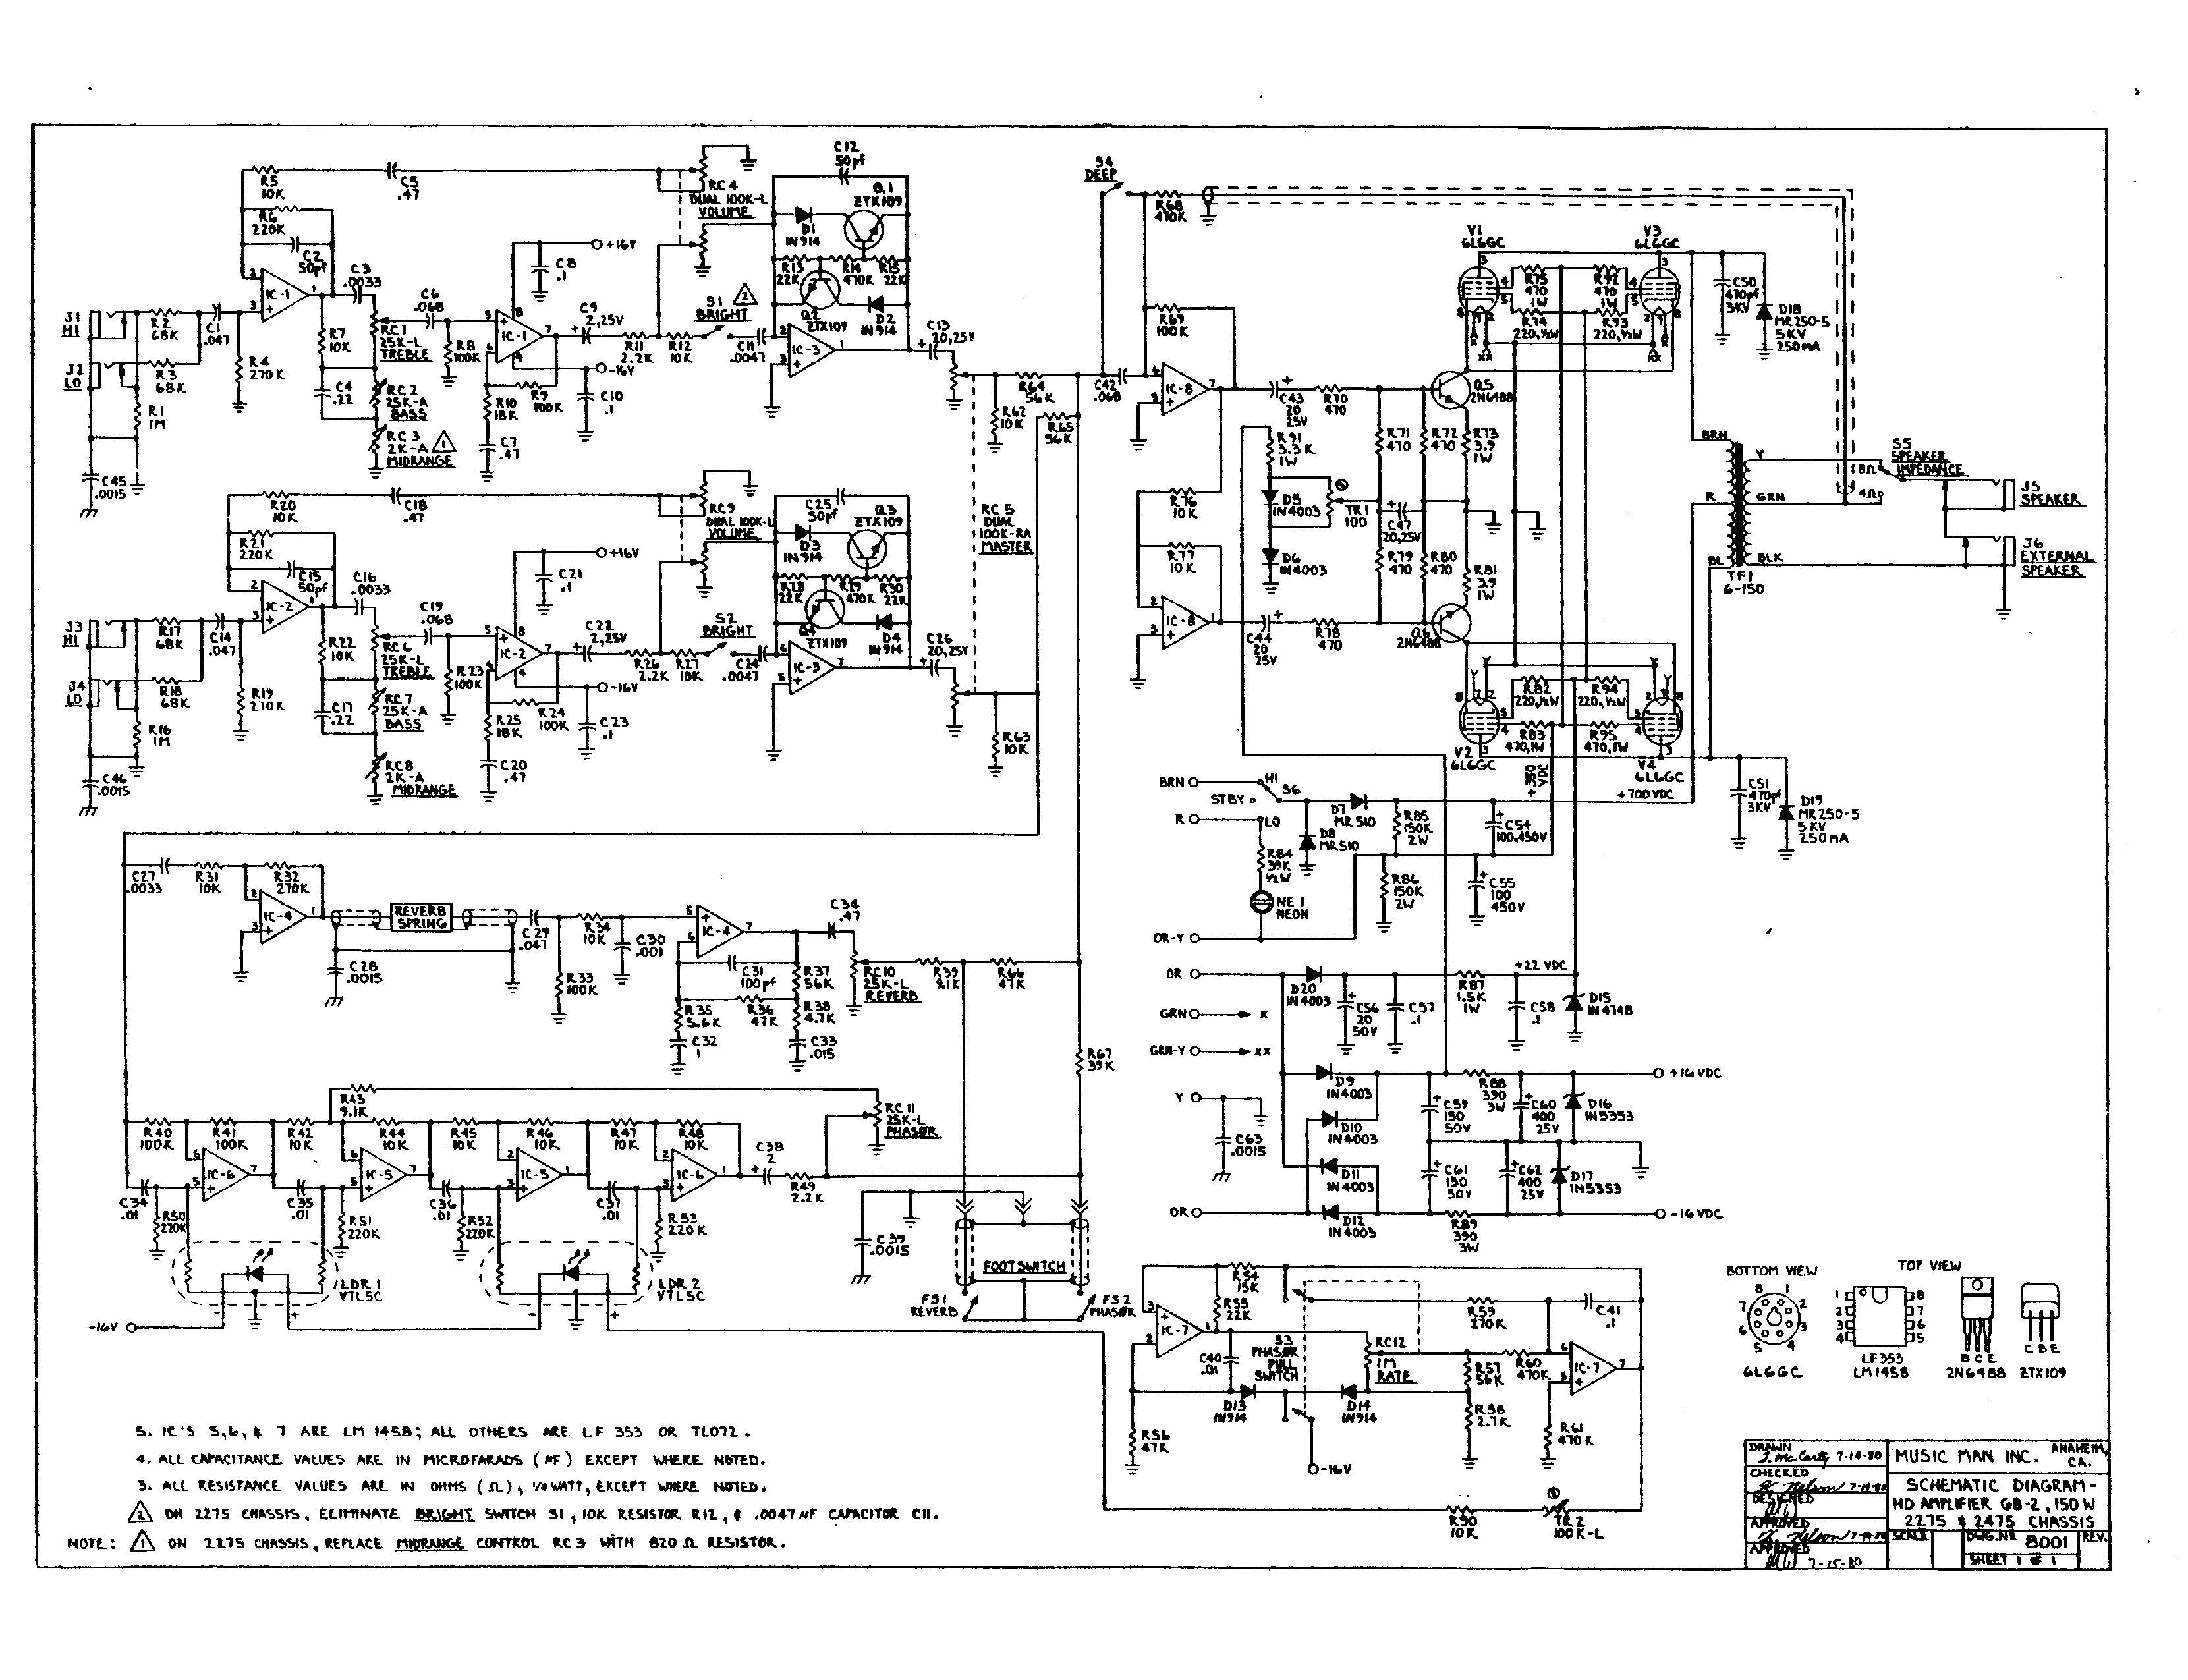 Vintage Magnatone Amplifier Schematic Auto Electrical Wiring Diagram Related With